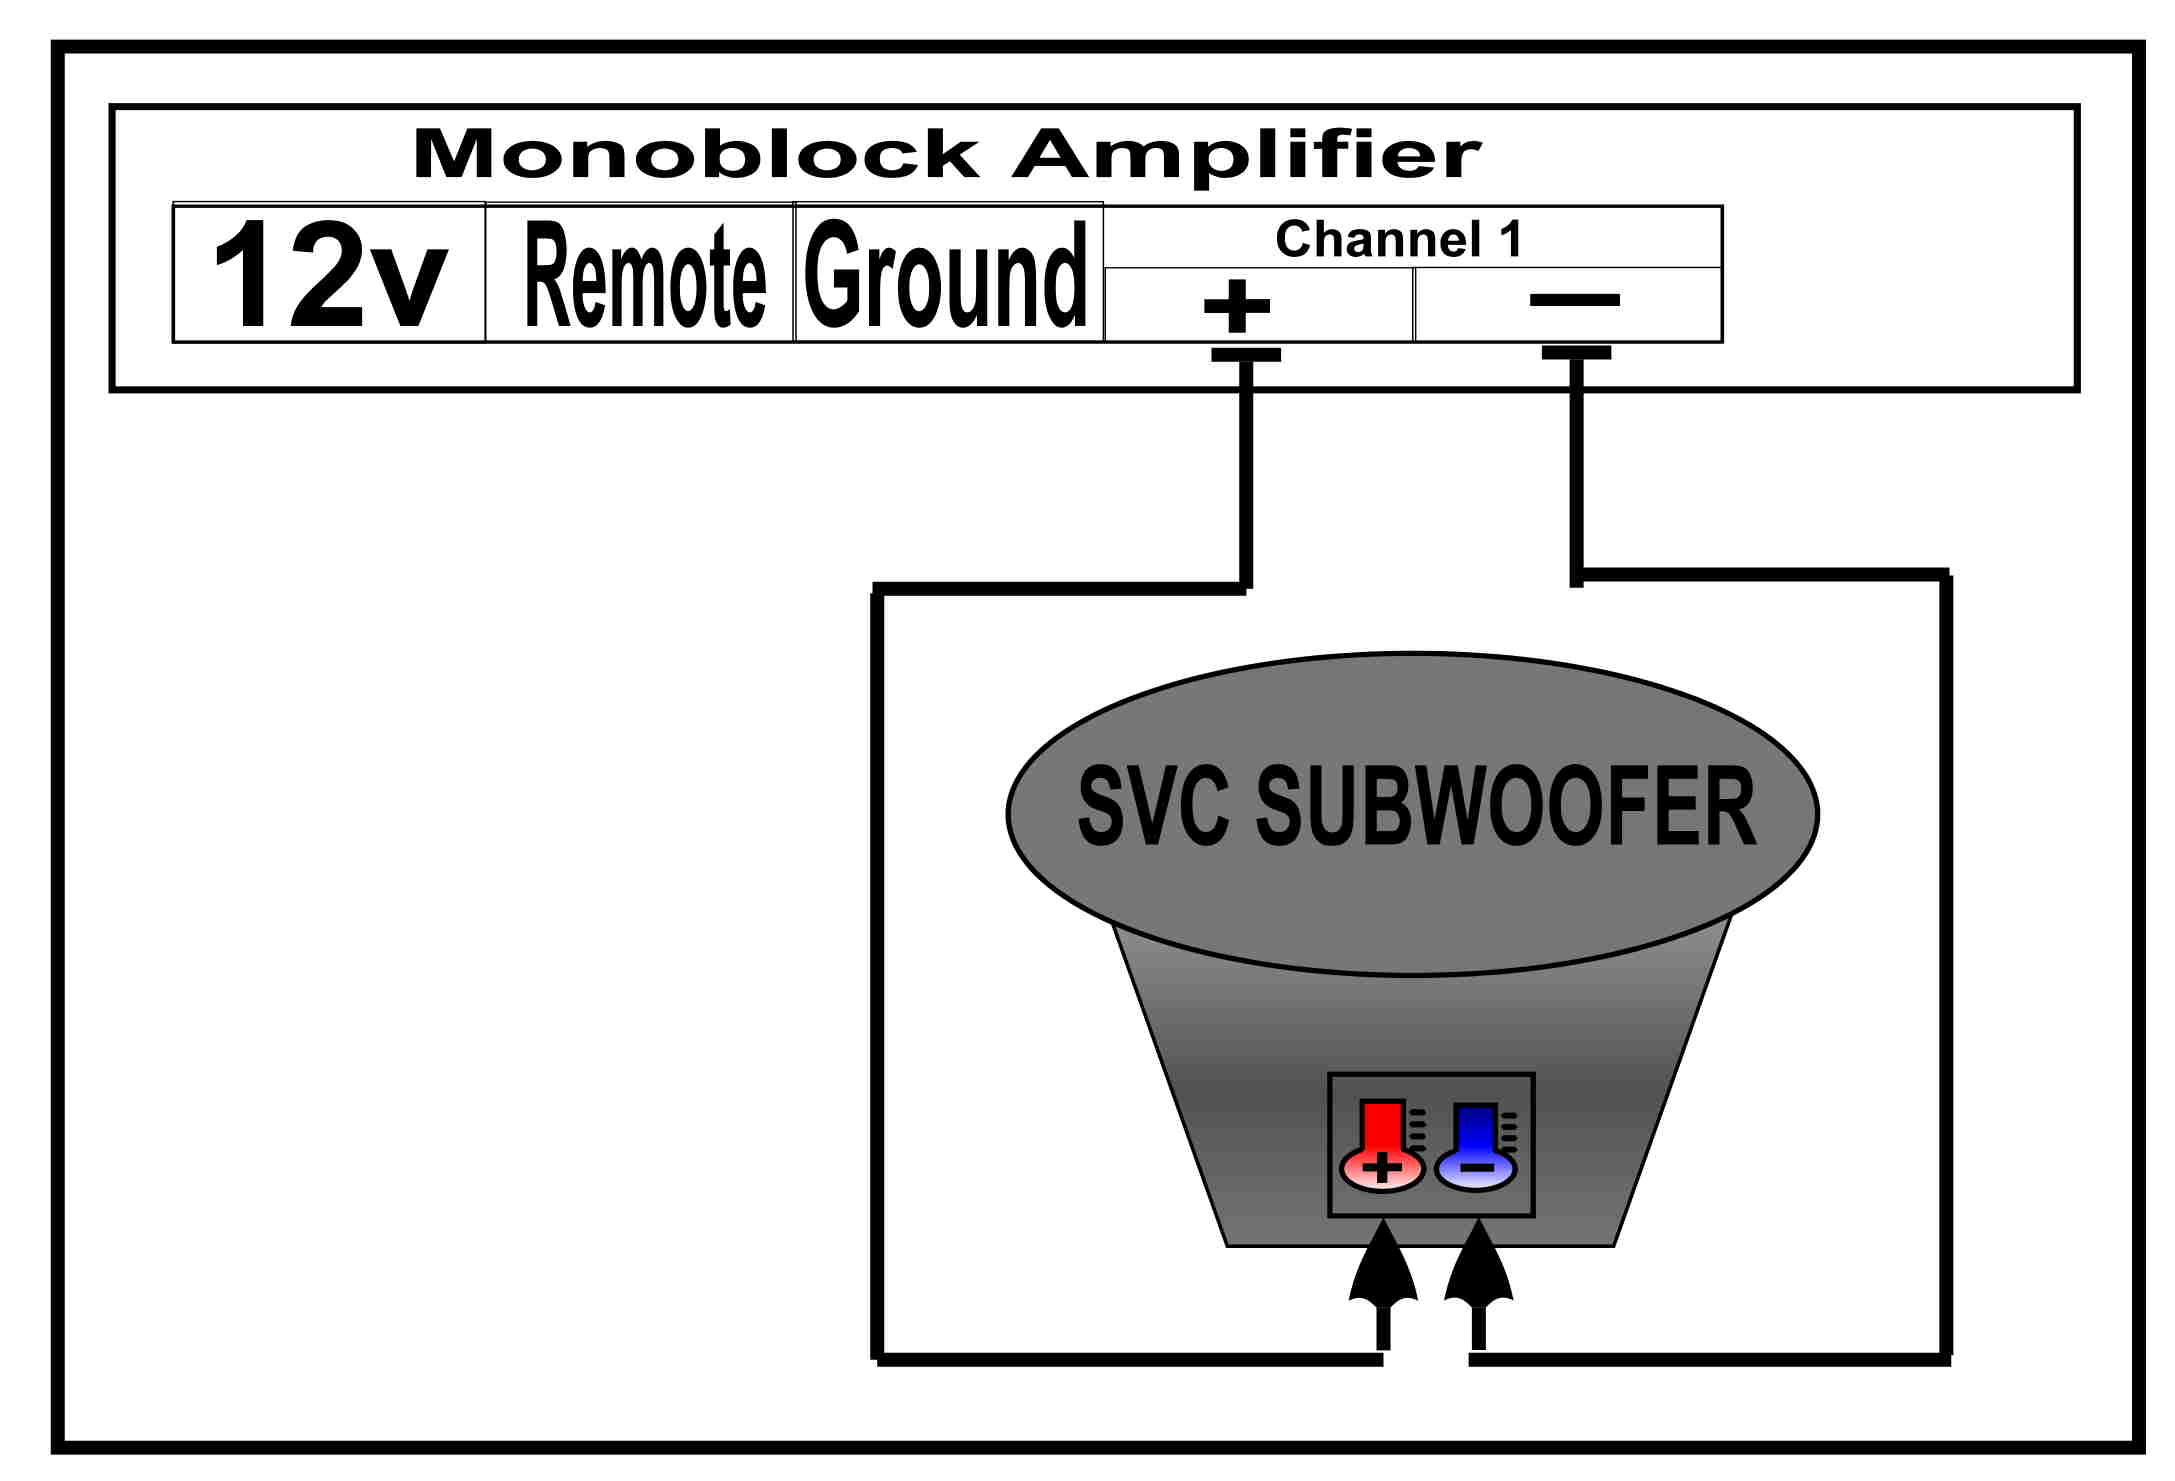 Wiring Diagram Subwoofer To Amplifier The wiring diagram – 4 Ohm Wiring Diagram